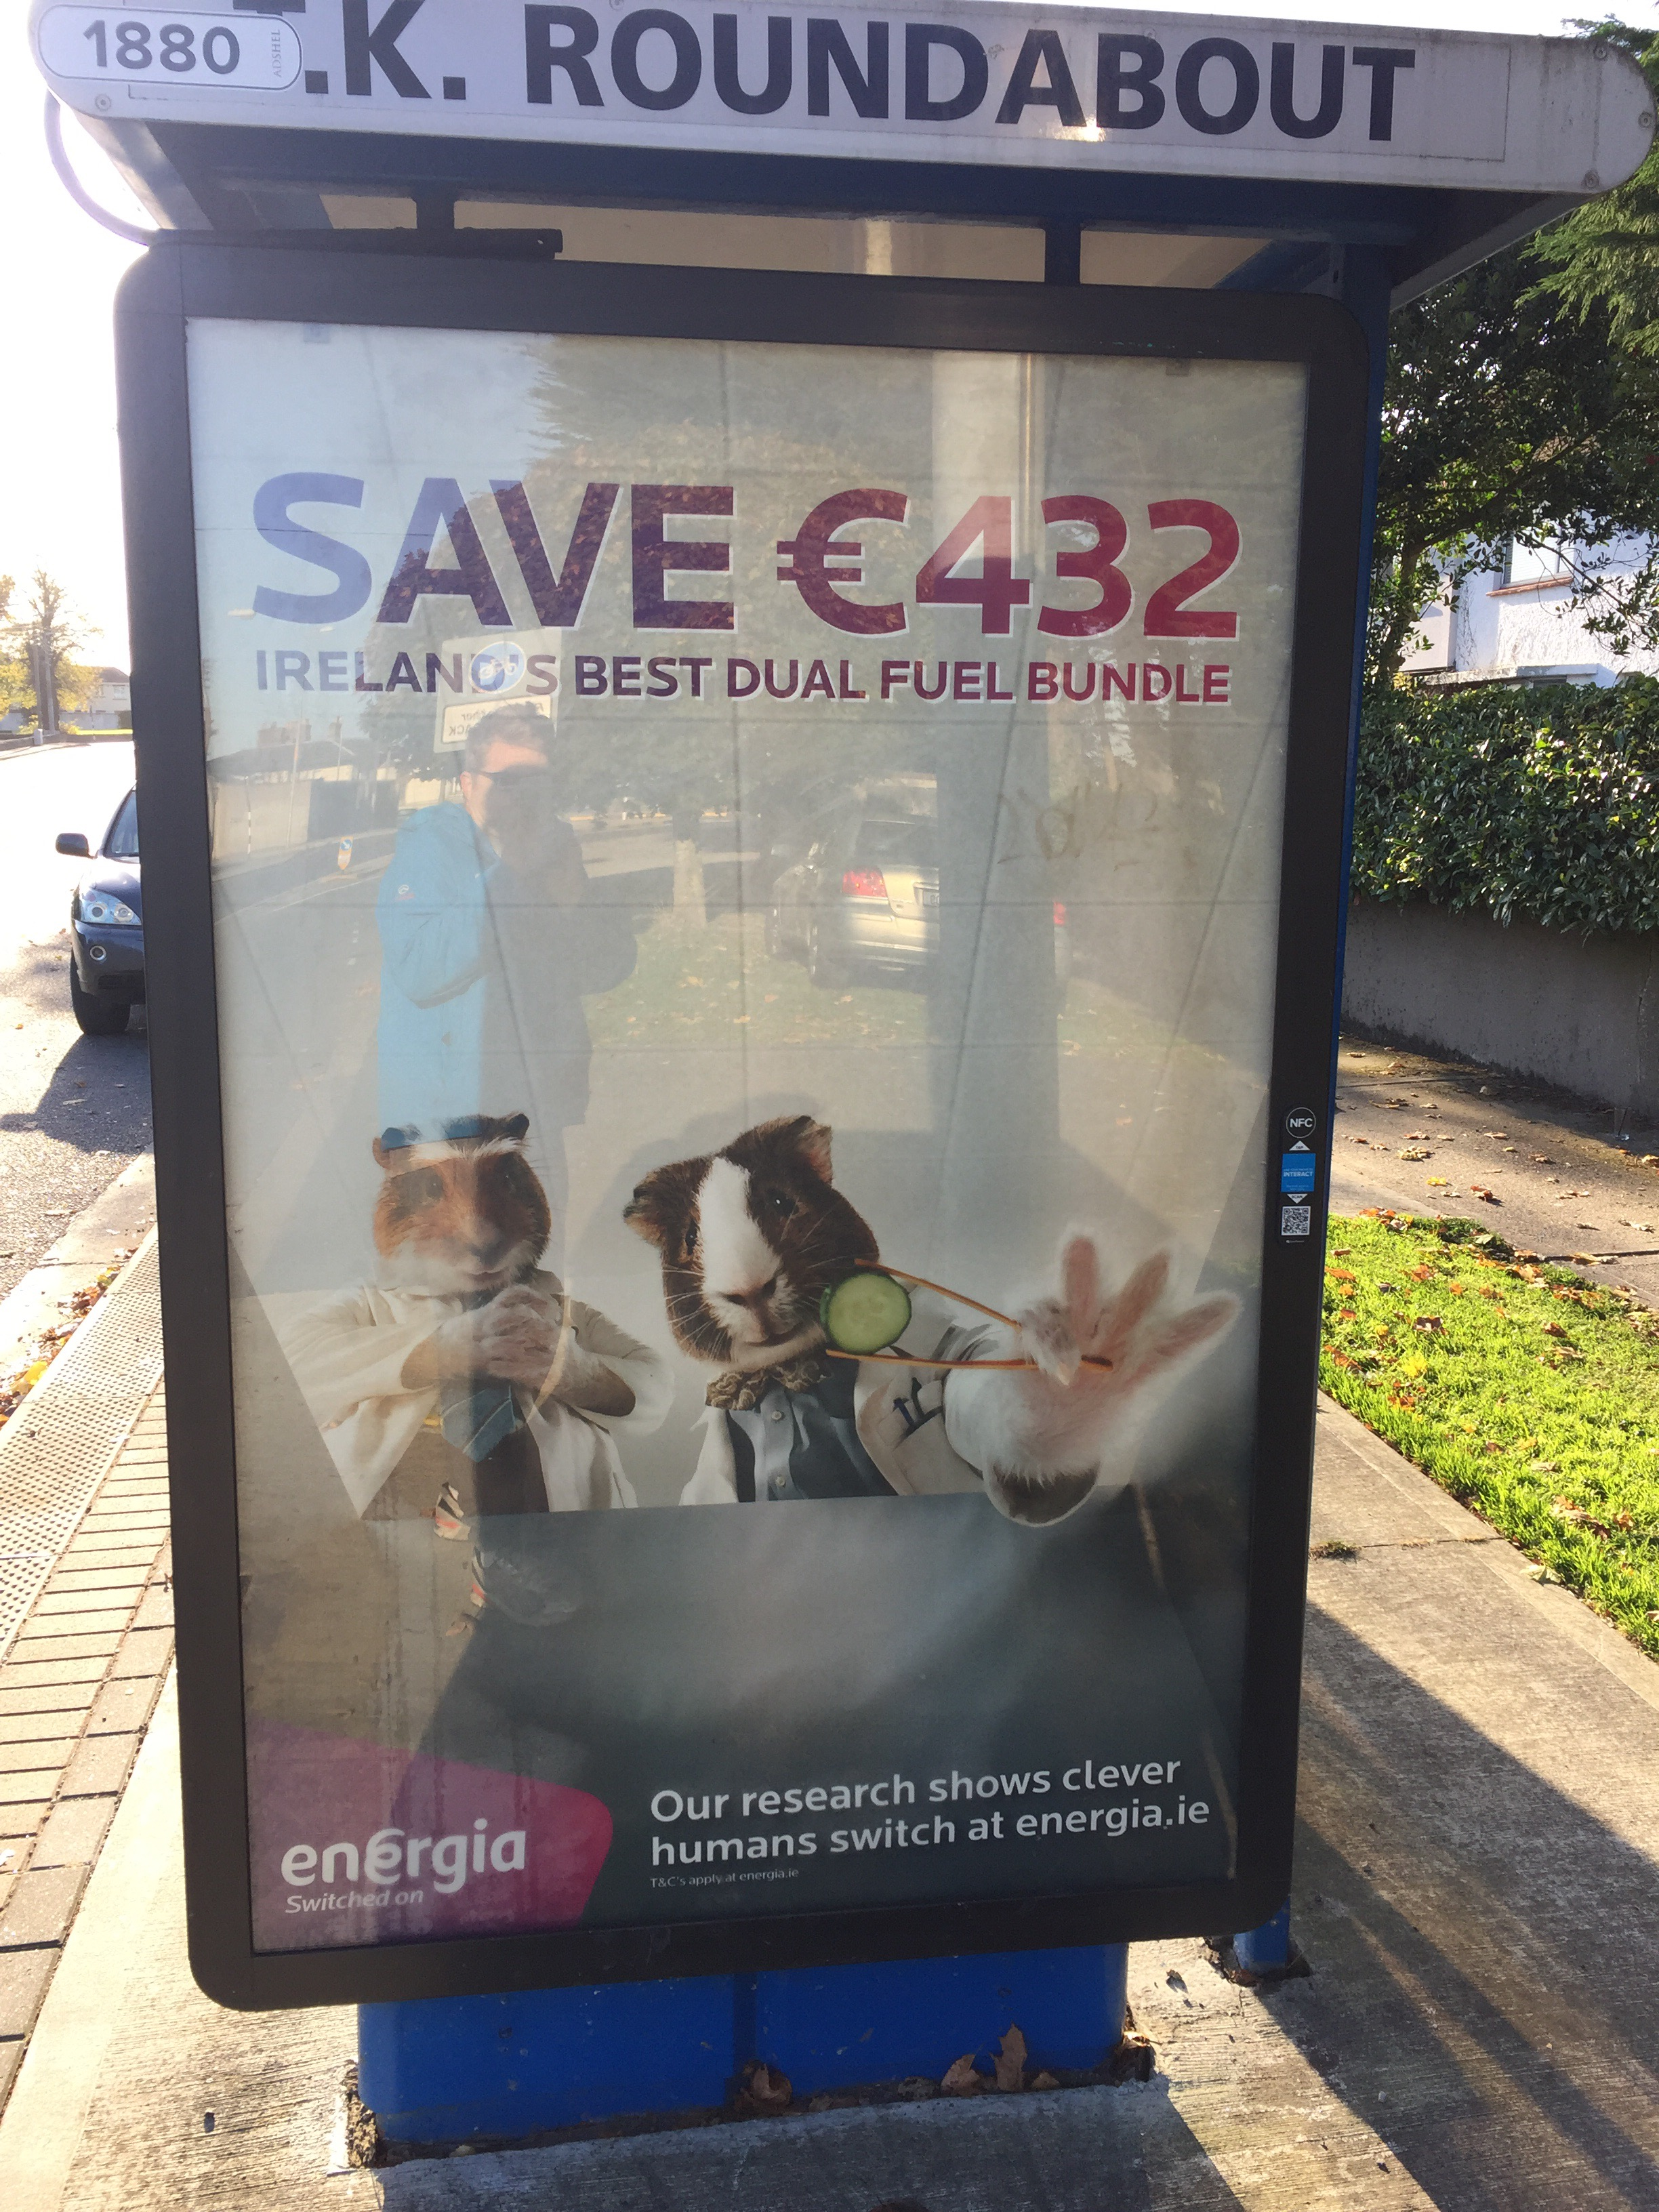 Energia – save €432 Ireland's best dual fuel bundle